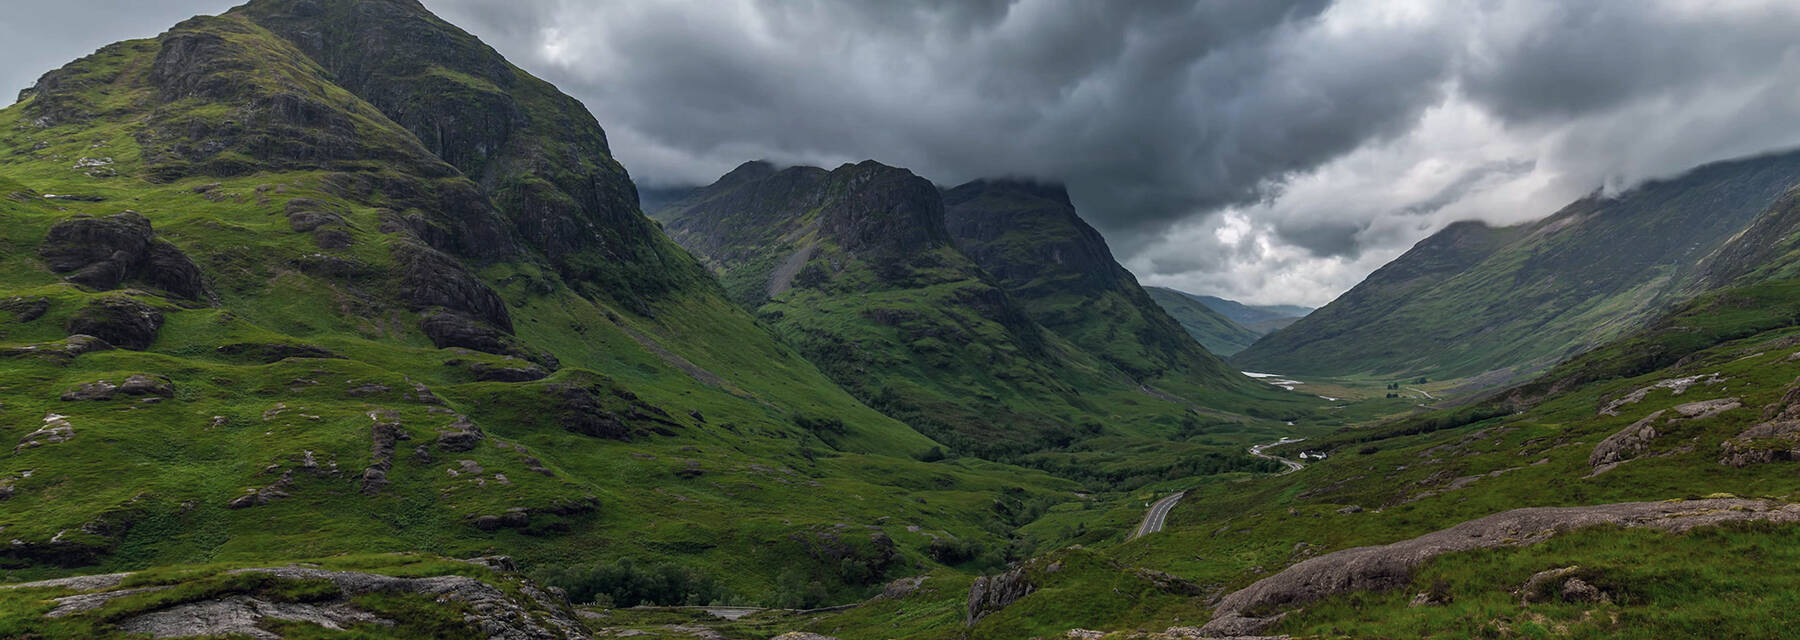 Glencoe, the mountains and main road winding through the glen.